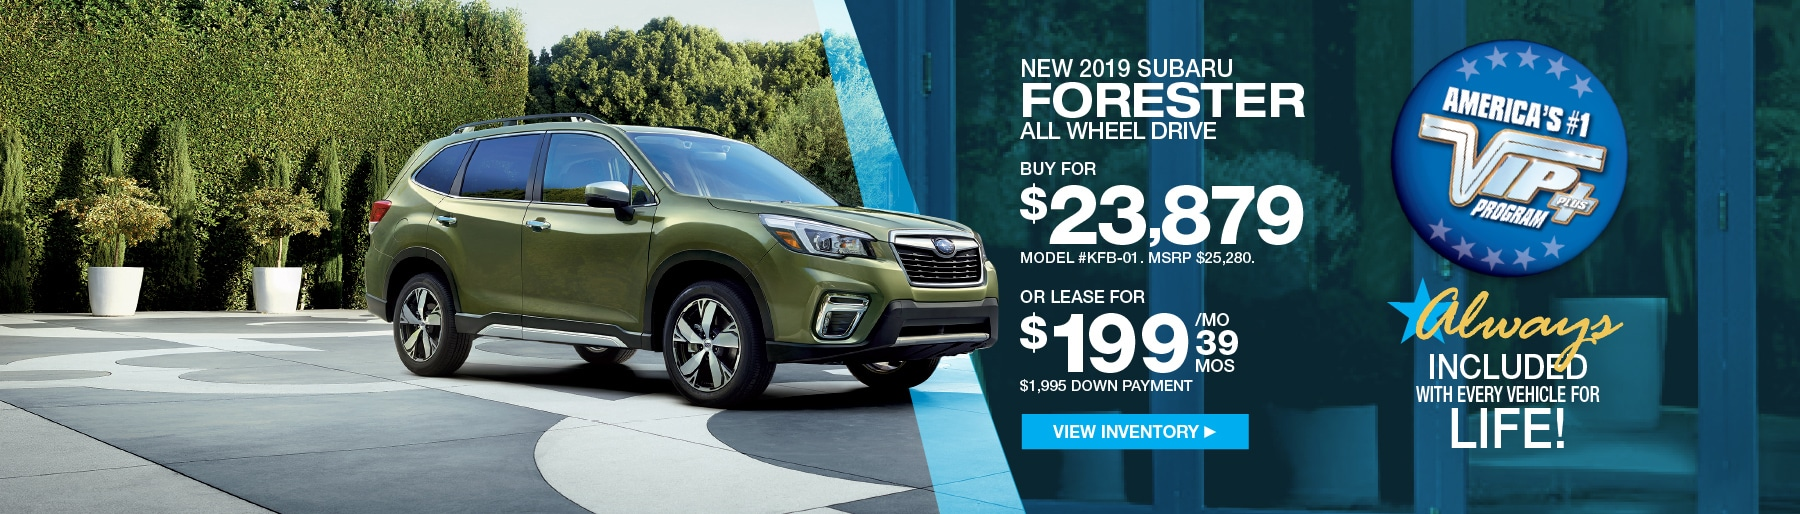 New Subaru Forester Suvs And Crossovers For Sale On Long Island Ny